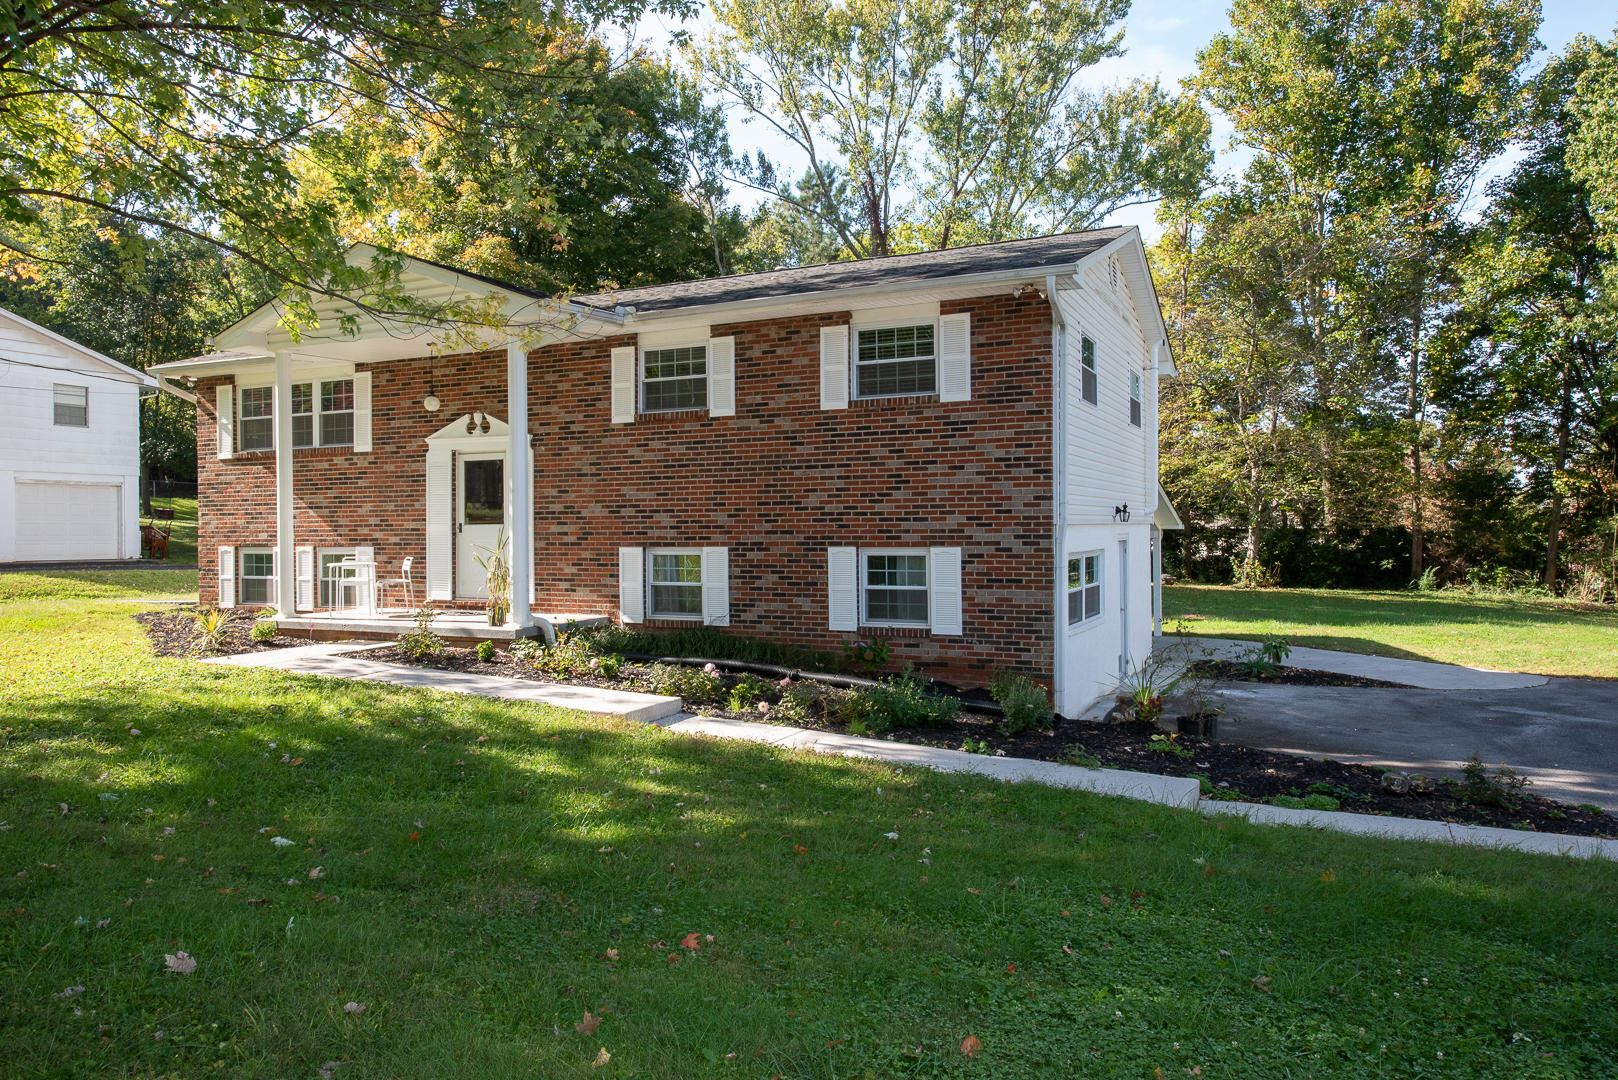 Photo of 241 Peterson Rd, Knoxville, TN 37934 (MLS # 1133327)